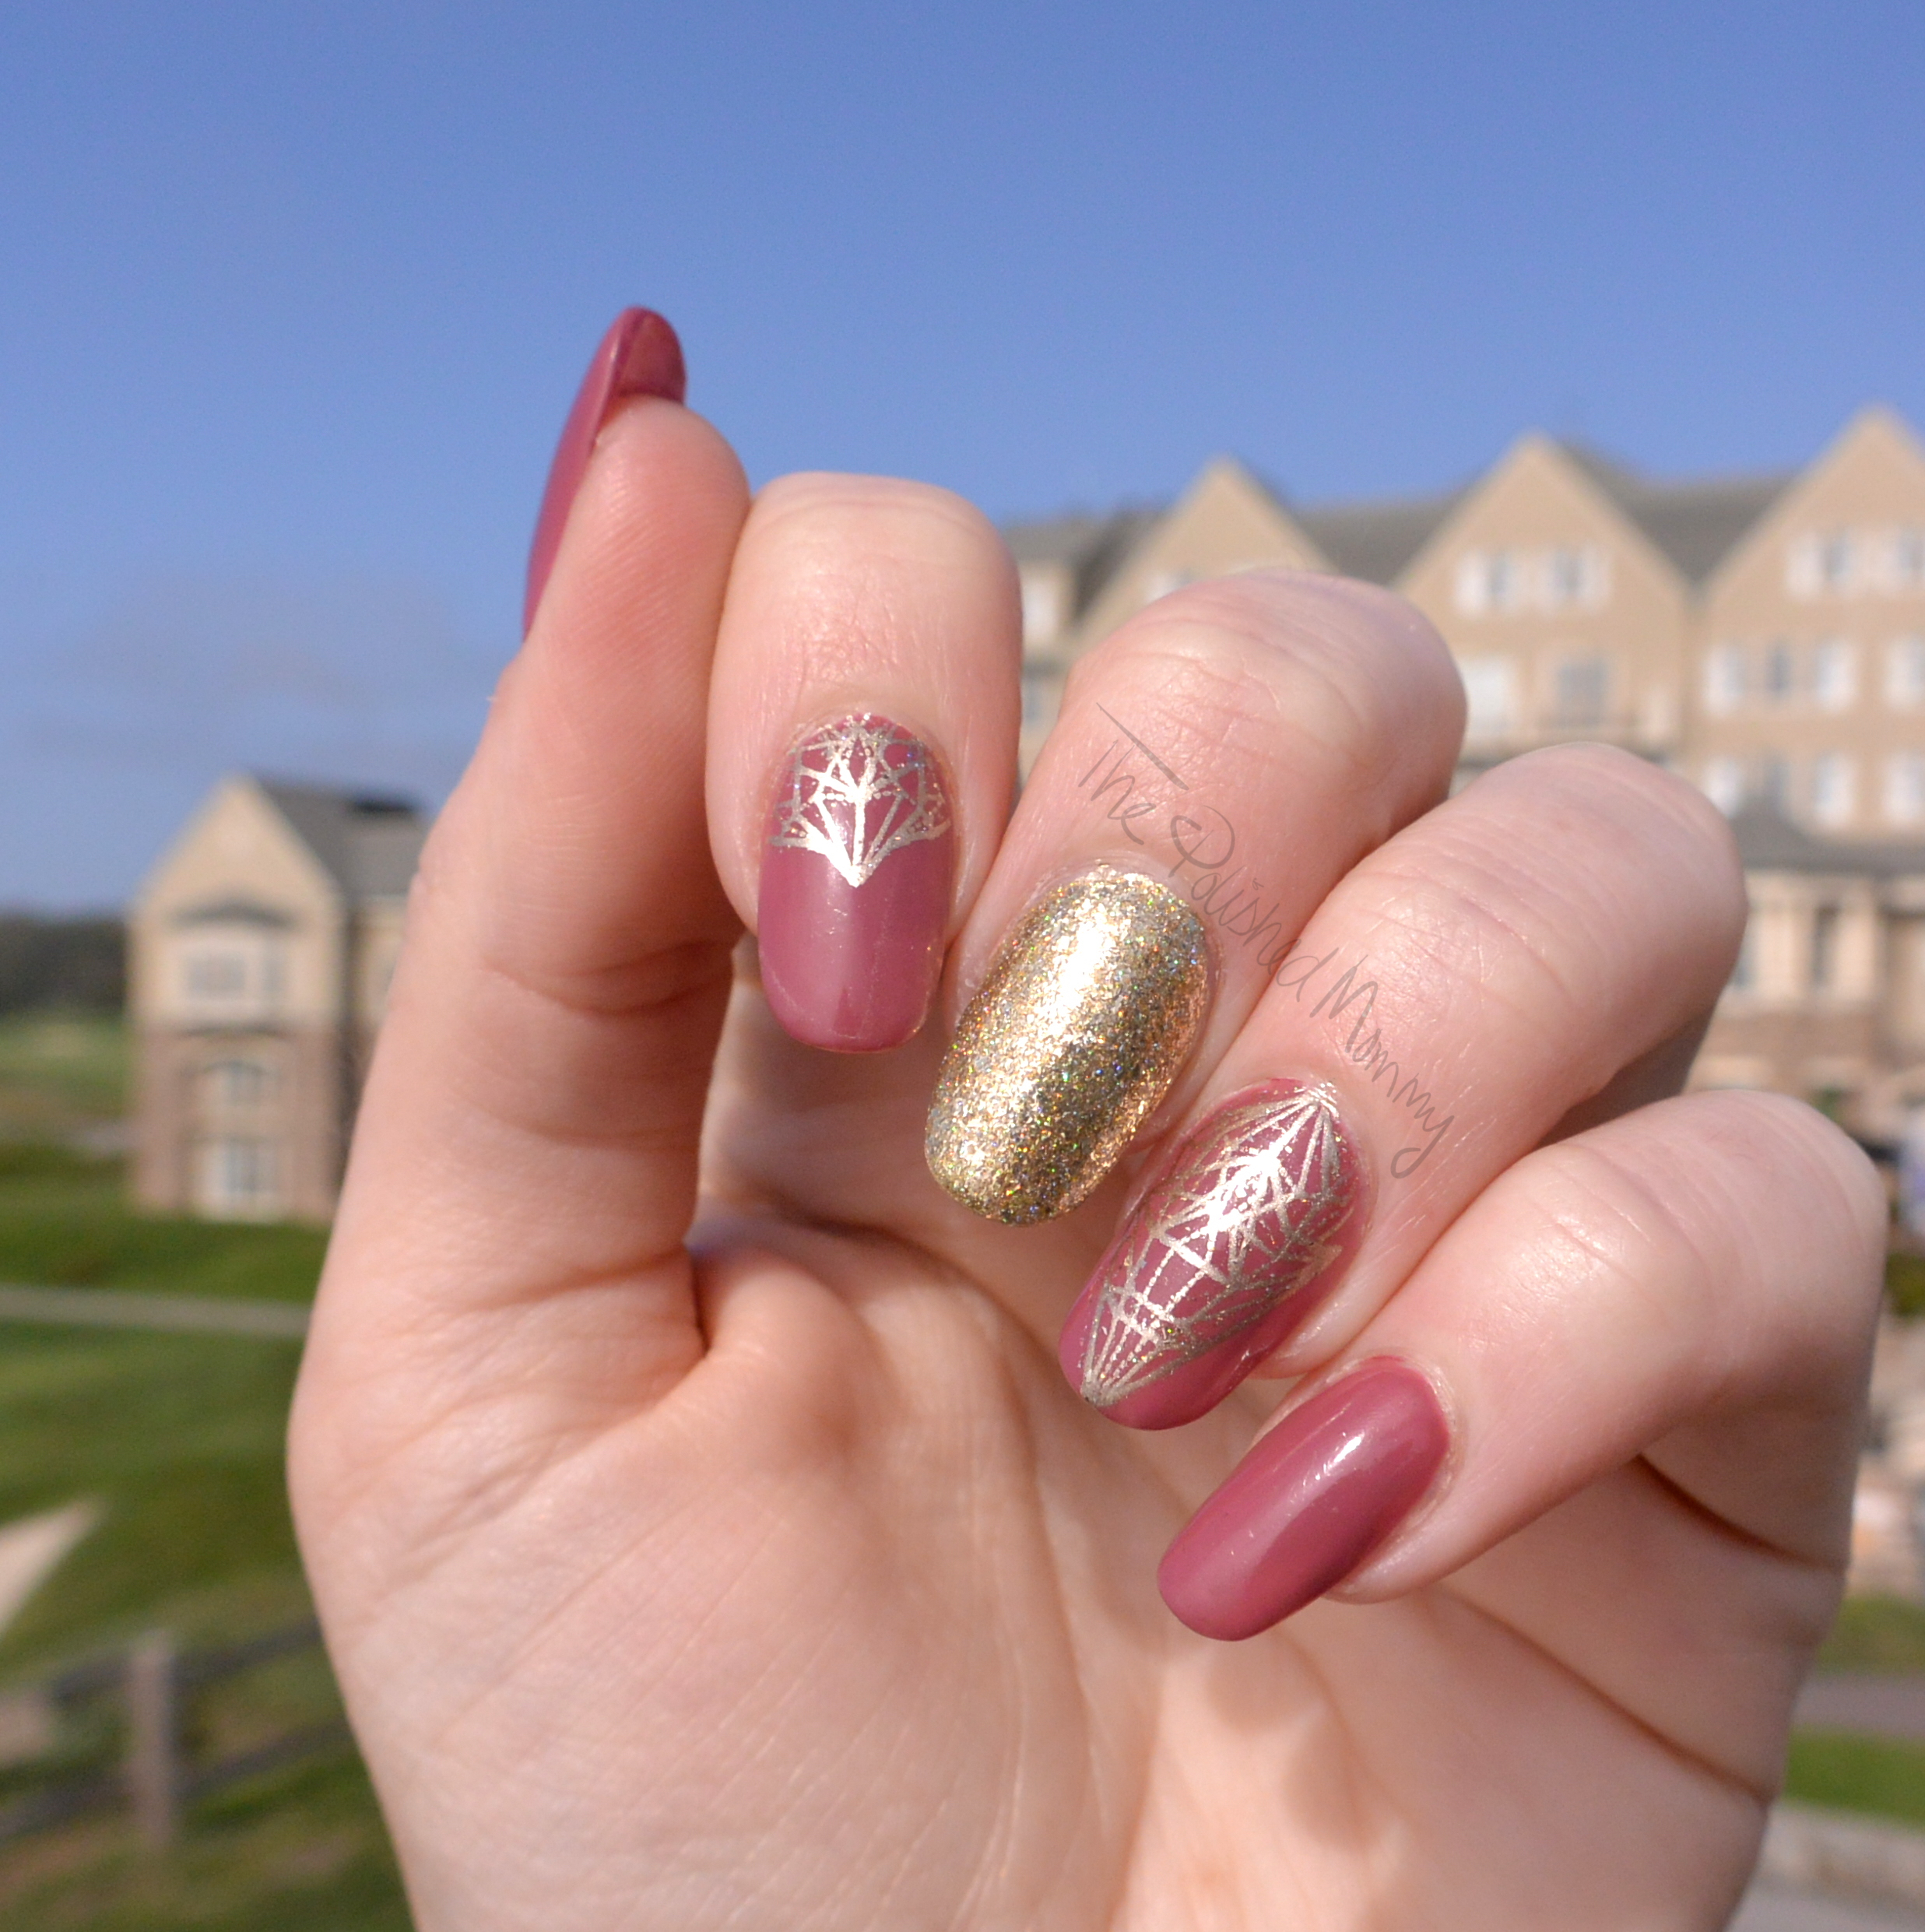 Essie Archives - The Polished Mommy